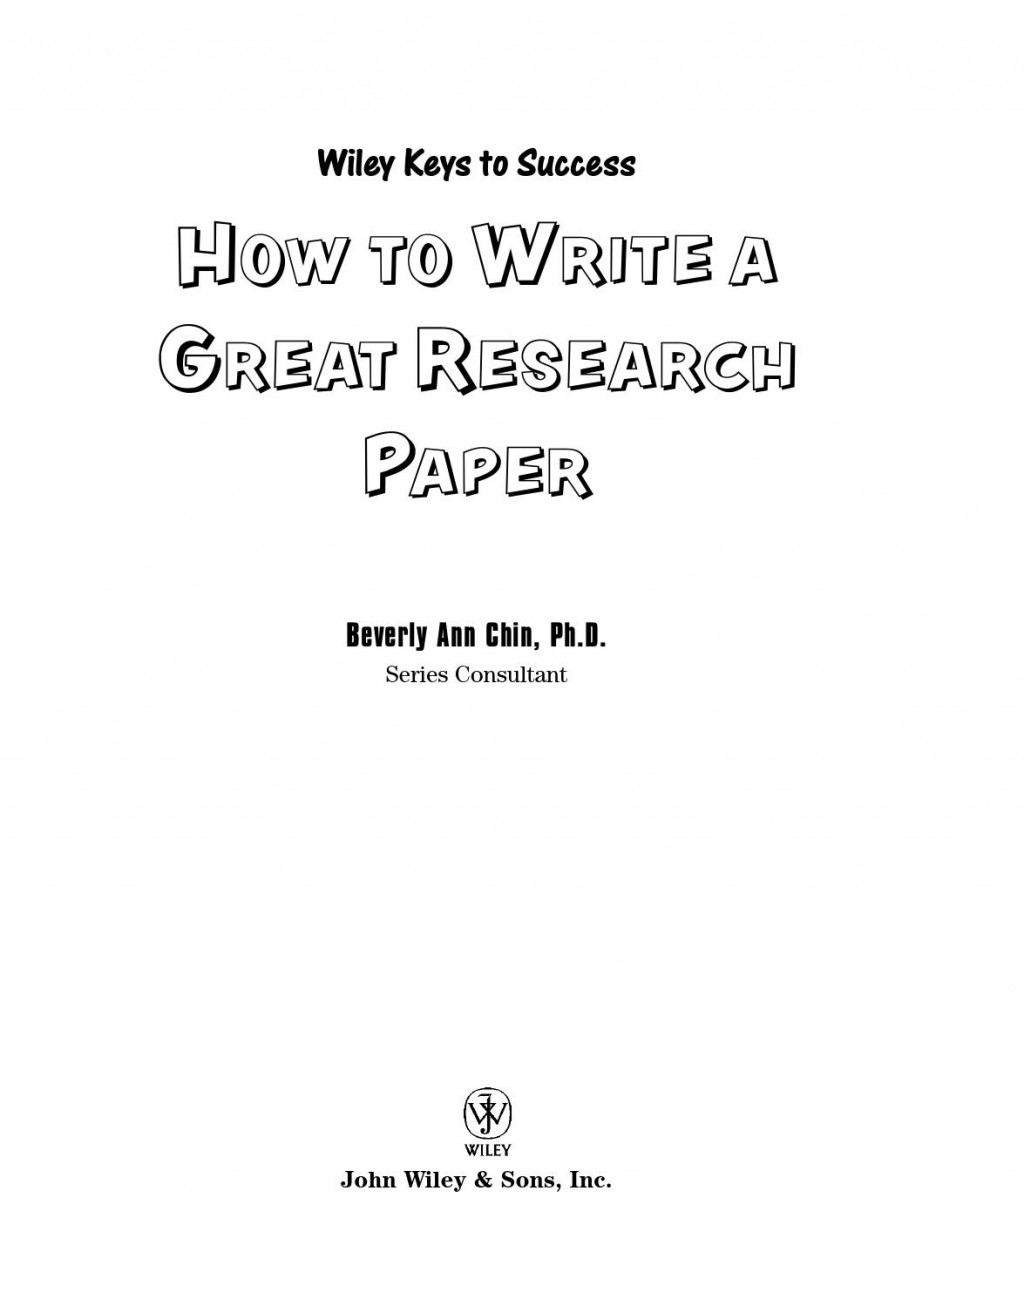 001 Research Paper How To Write Great Wiley Keys Success Page 1 Archaicawful A (wiley Success) Large